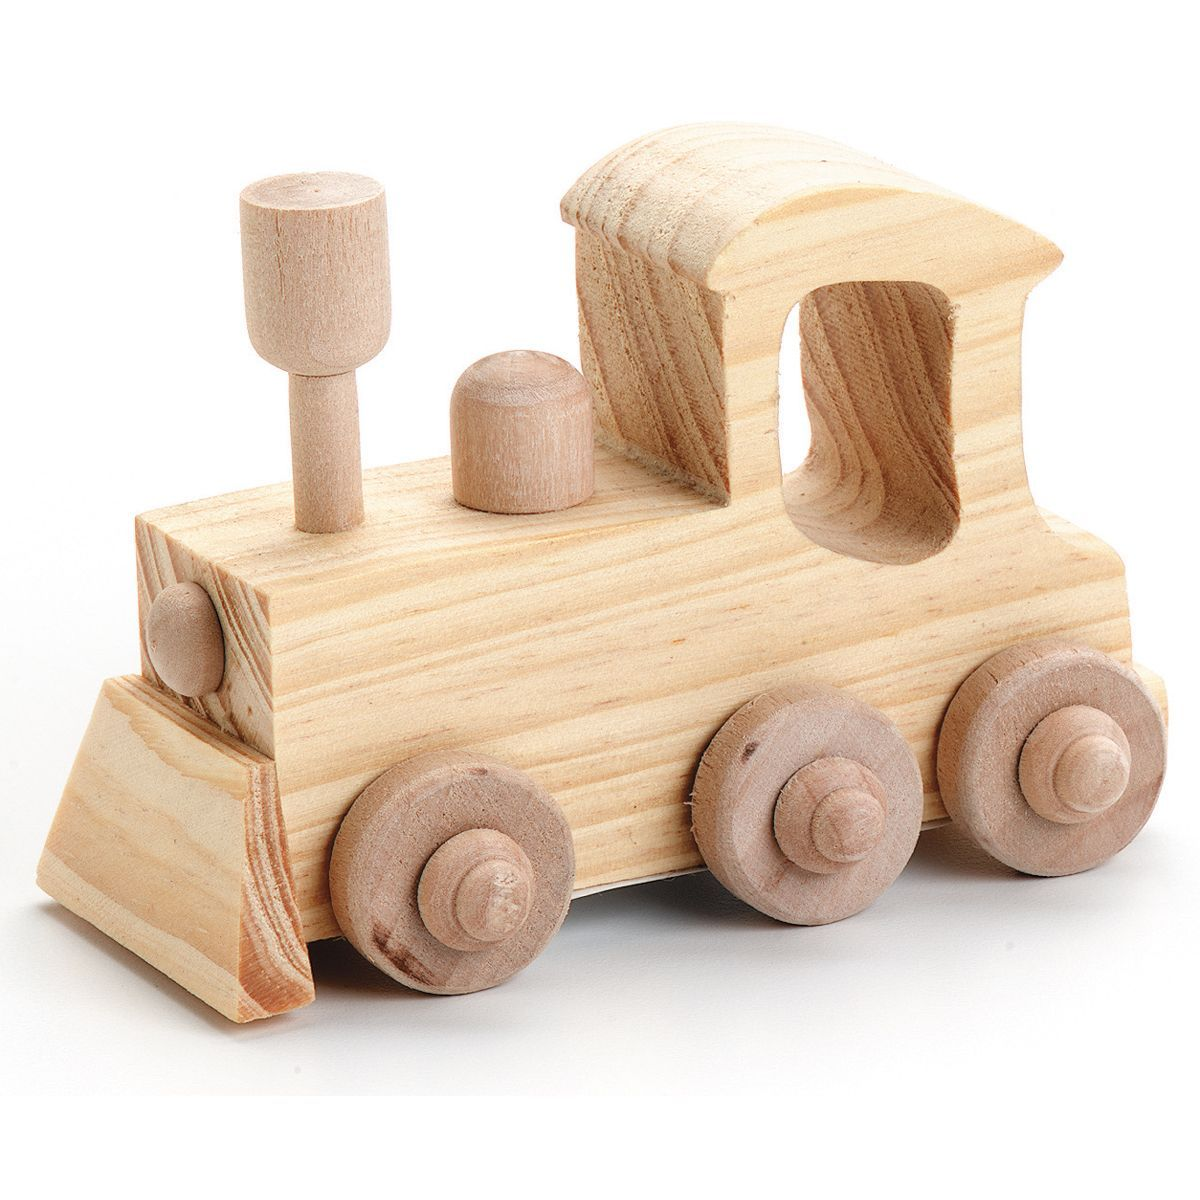 Darice Wood Toy Kit Locomotive Decorate Your Own Wooden